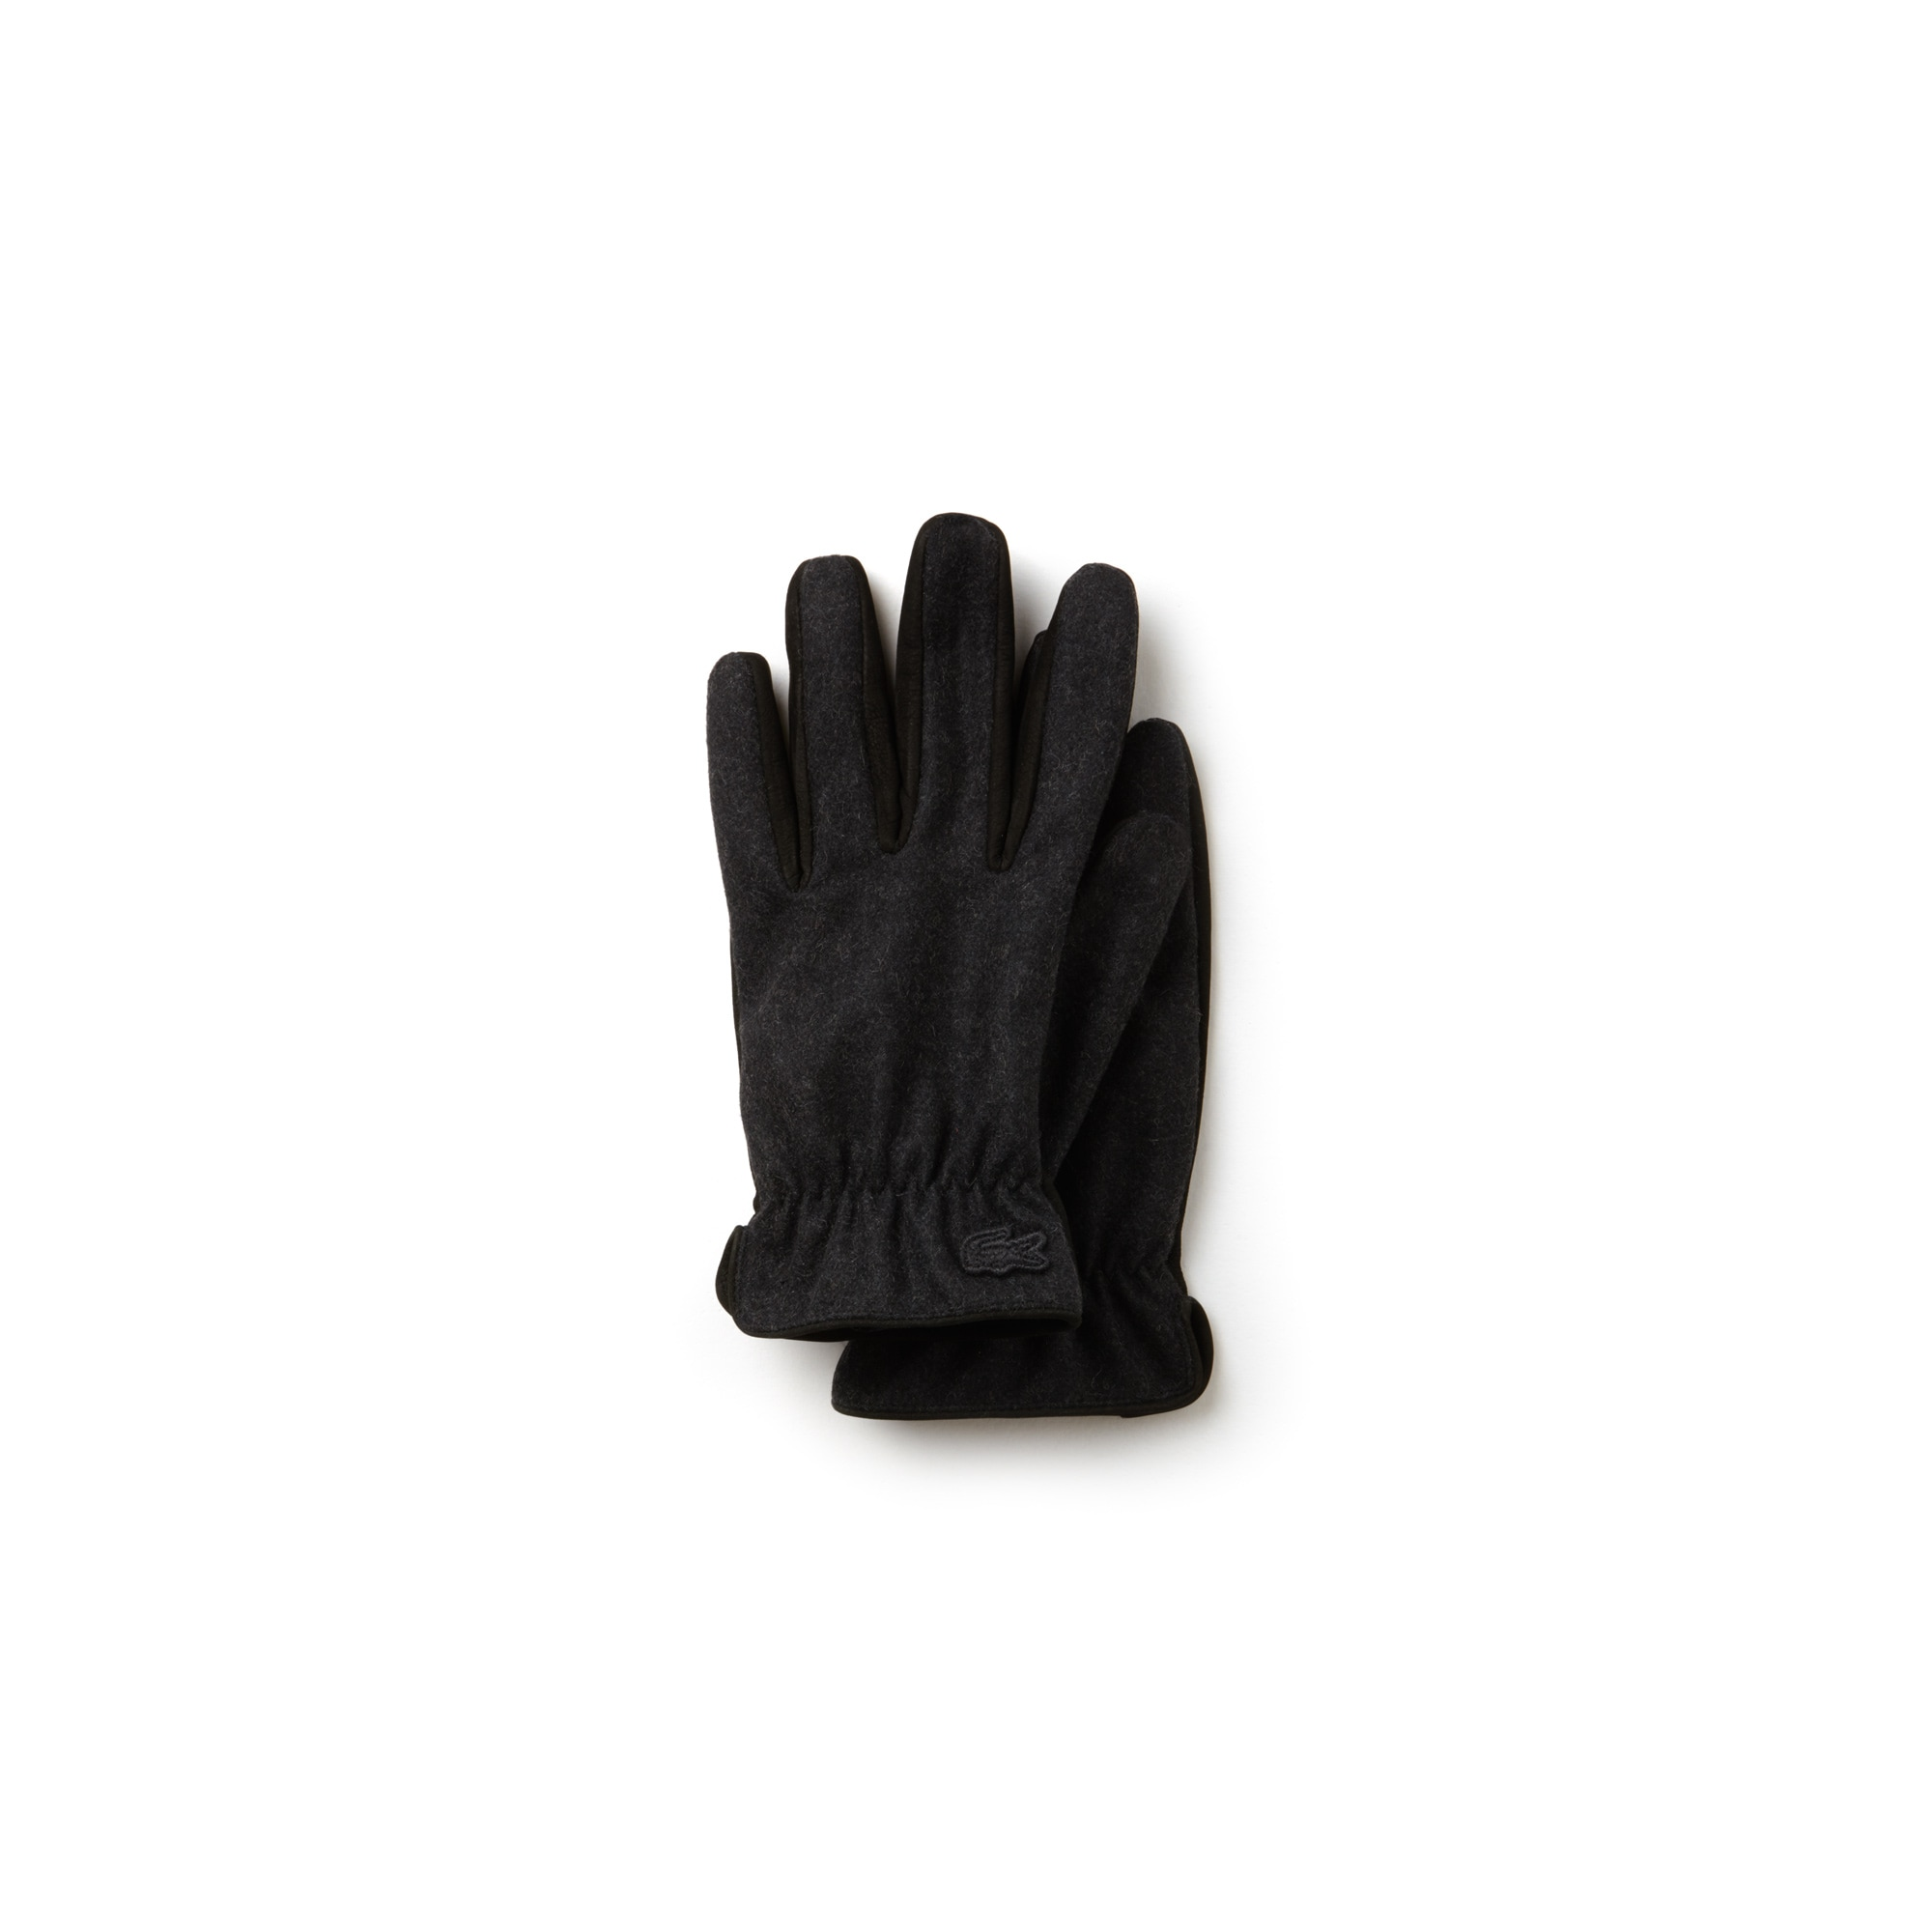 라코스테 볼캡 Lacoste Mens Bicolor Leather And Wool Gloves,BLACK/STONE GREY